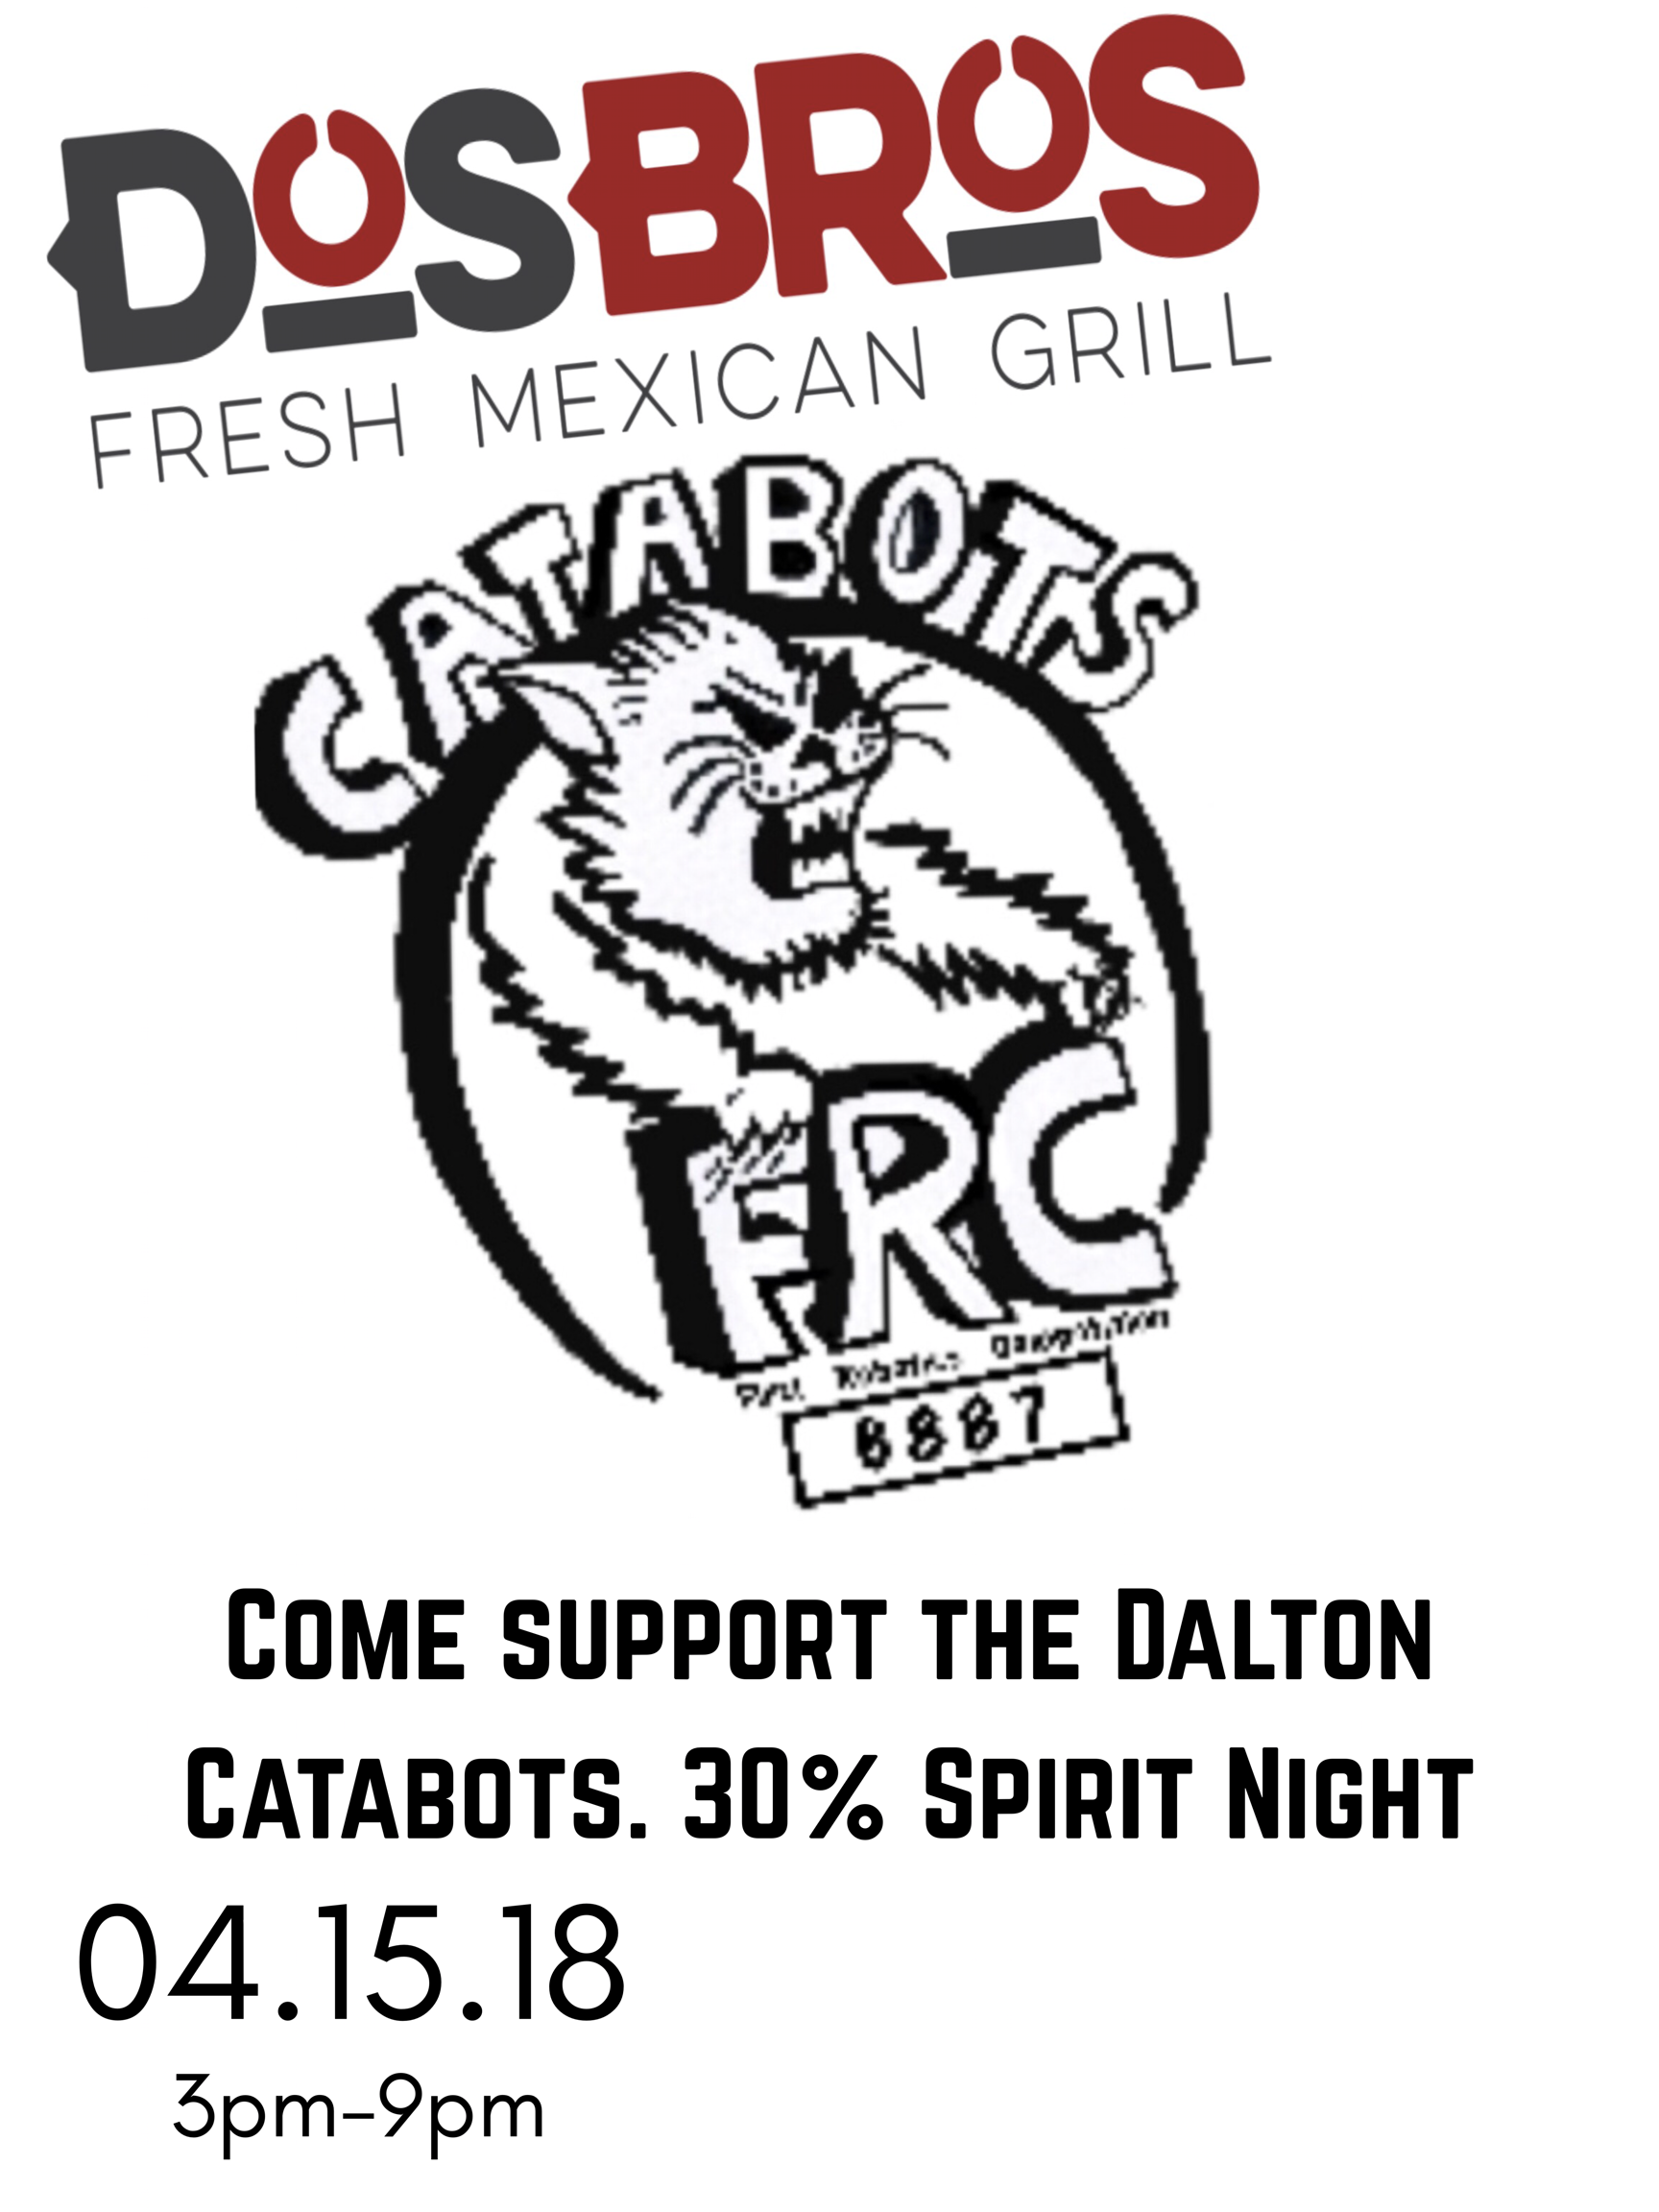 Dos Bros Spirit Night April 15 from 3-9 p.m.